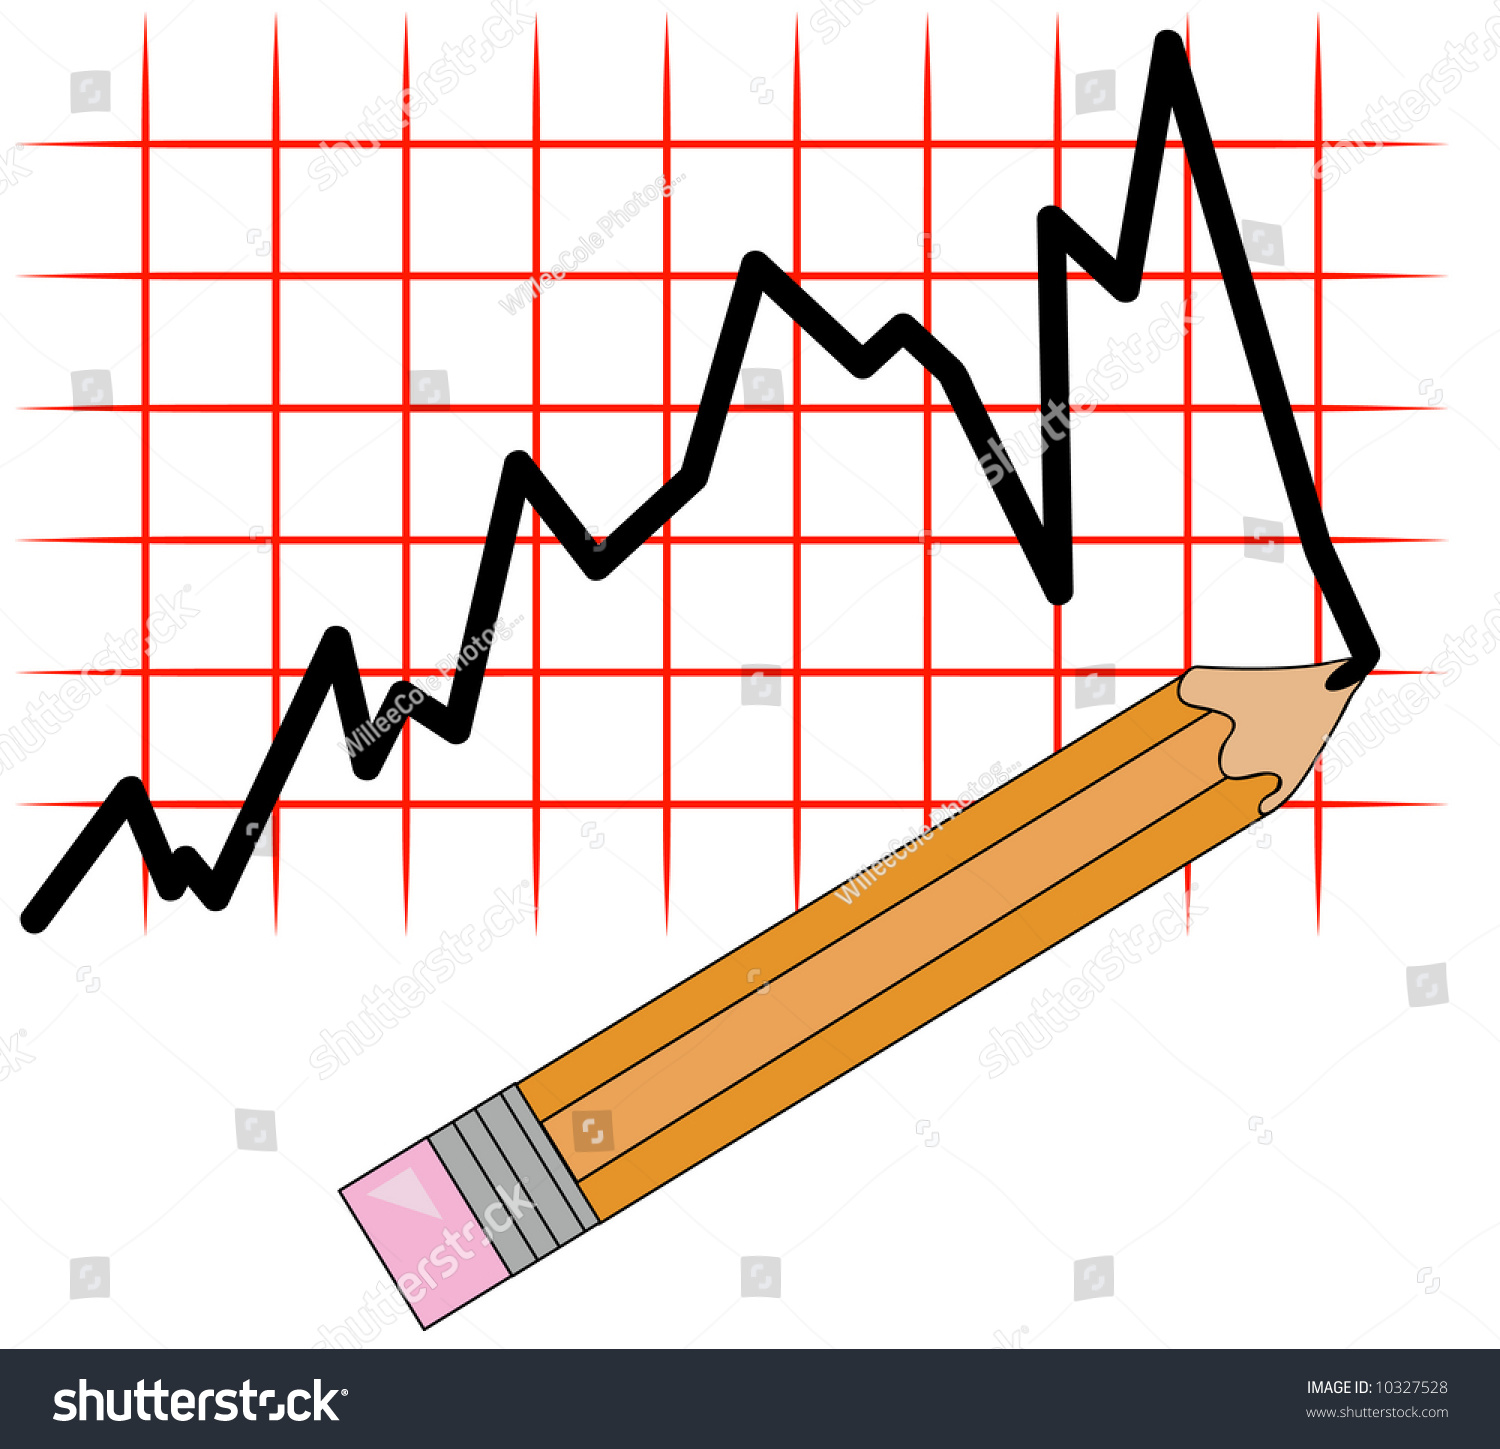 Drawing Line Graphs By Hand : Pencil drawing line graph on grid stock photo